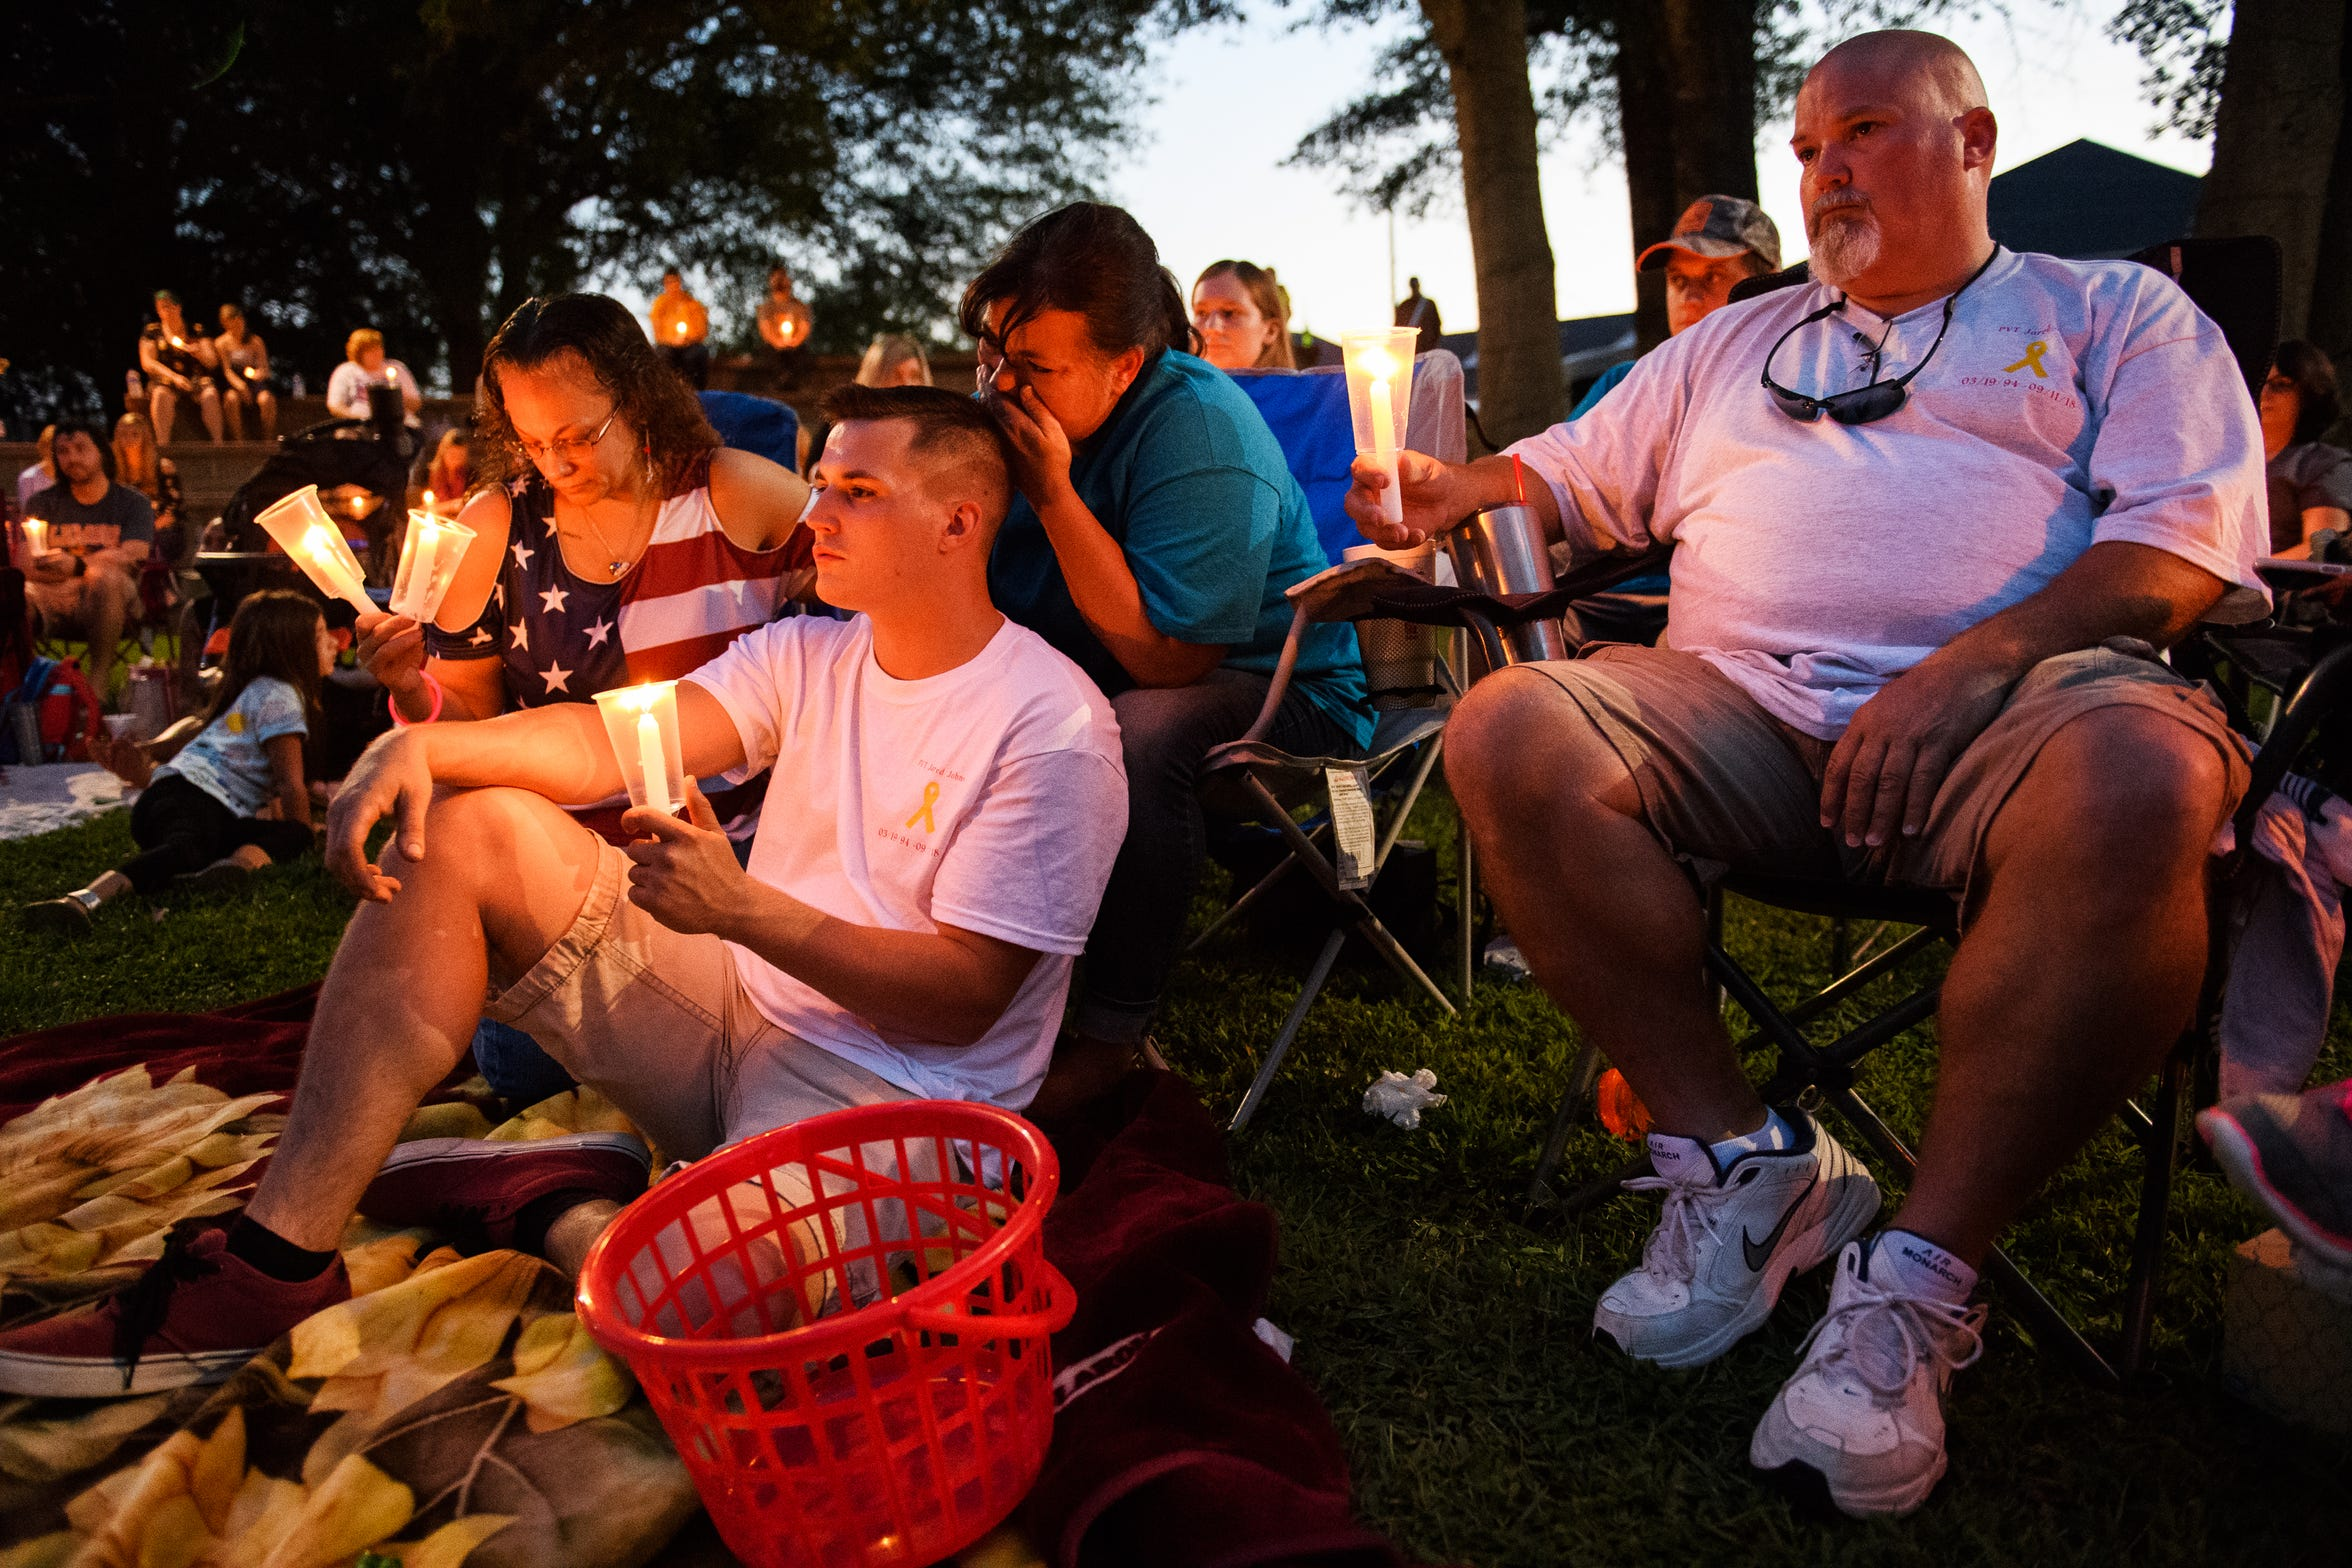 Family and loved ones of Jared Johns participate in a candlelight vigil honoring his life at Simpsonville City Park on Sunday, Sept. 23, 2018.